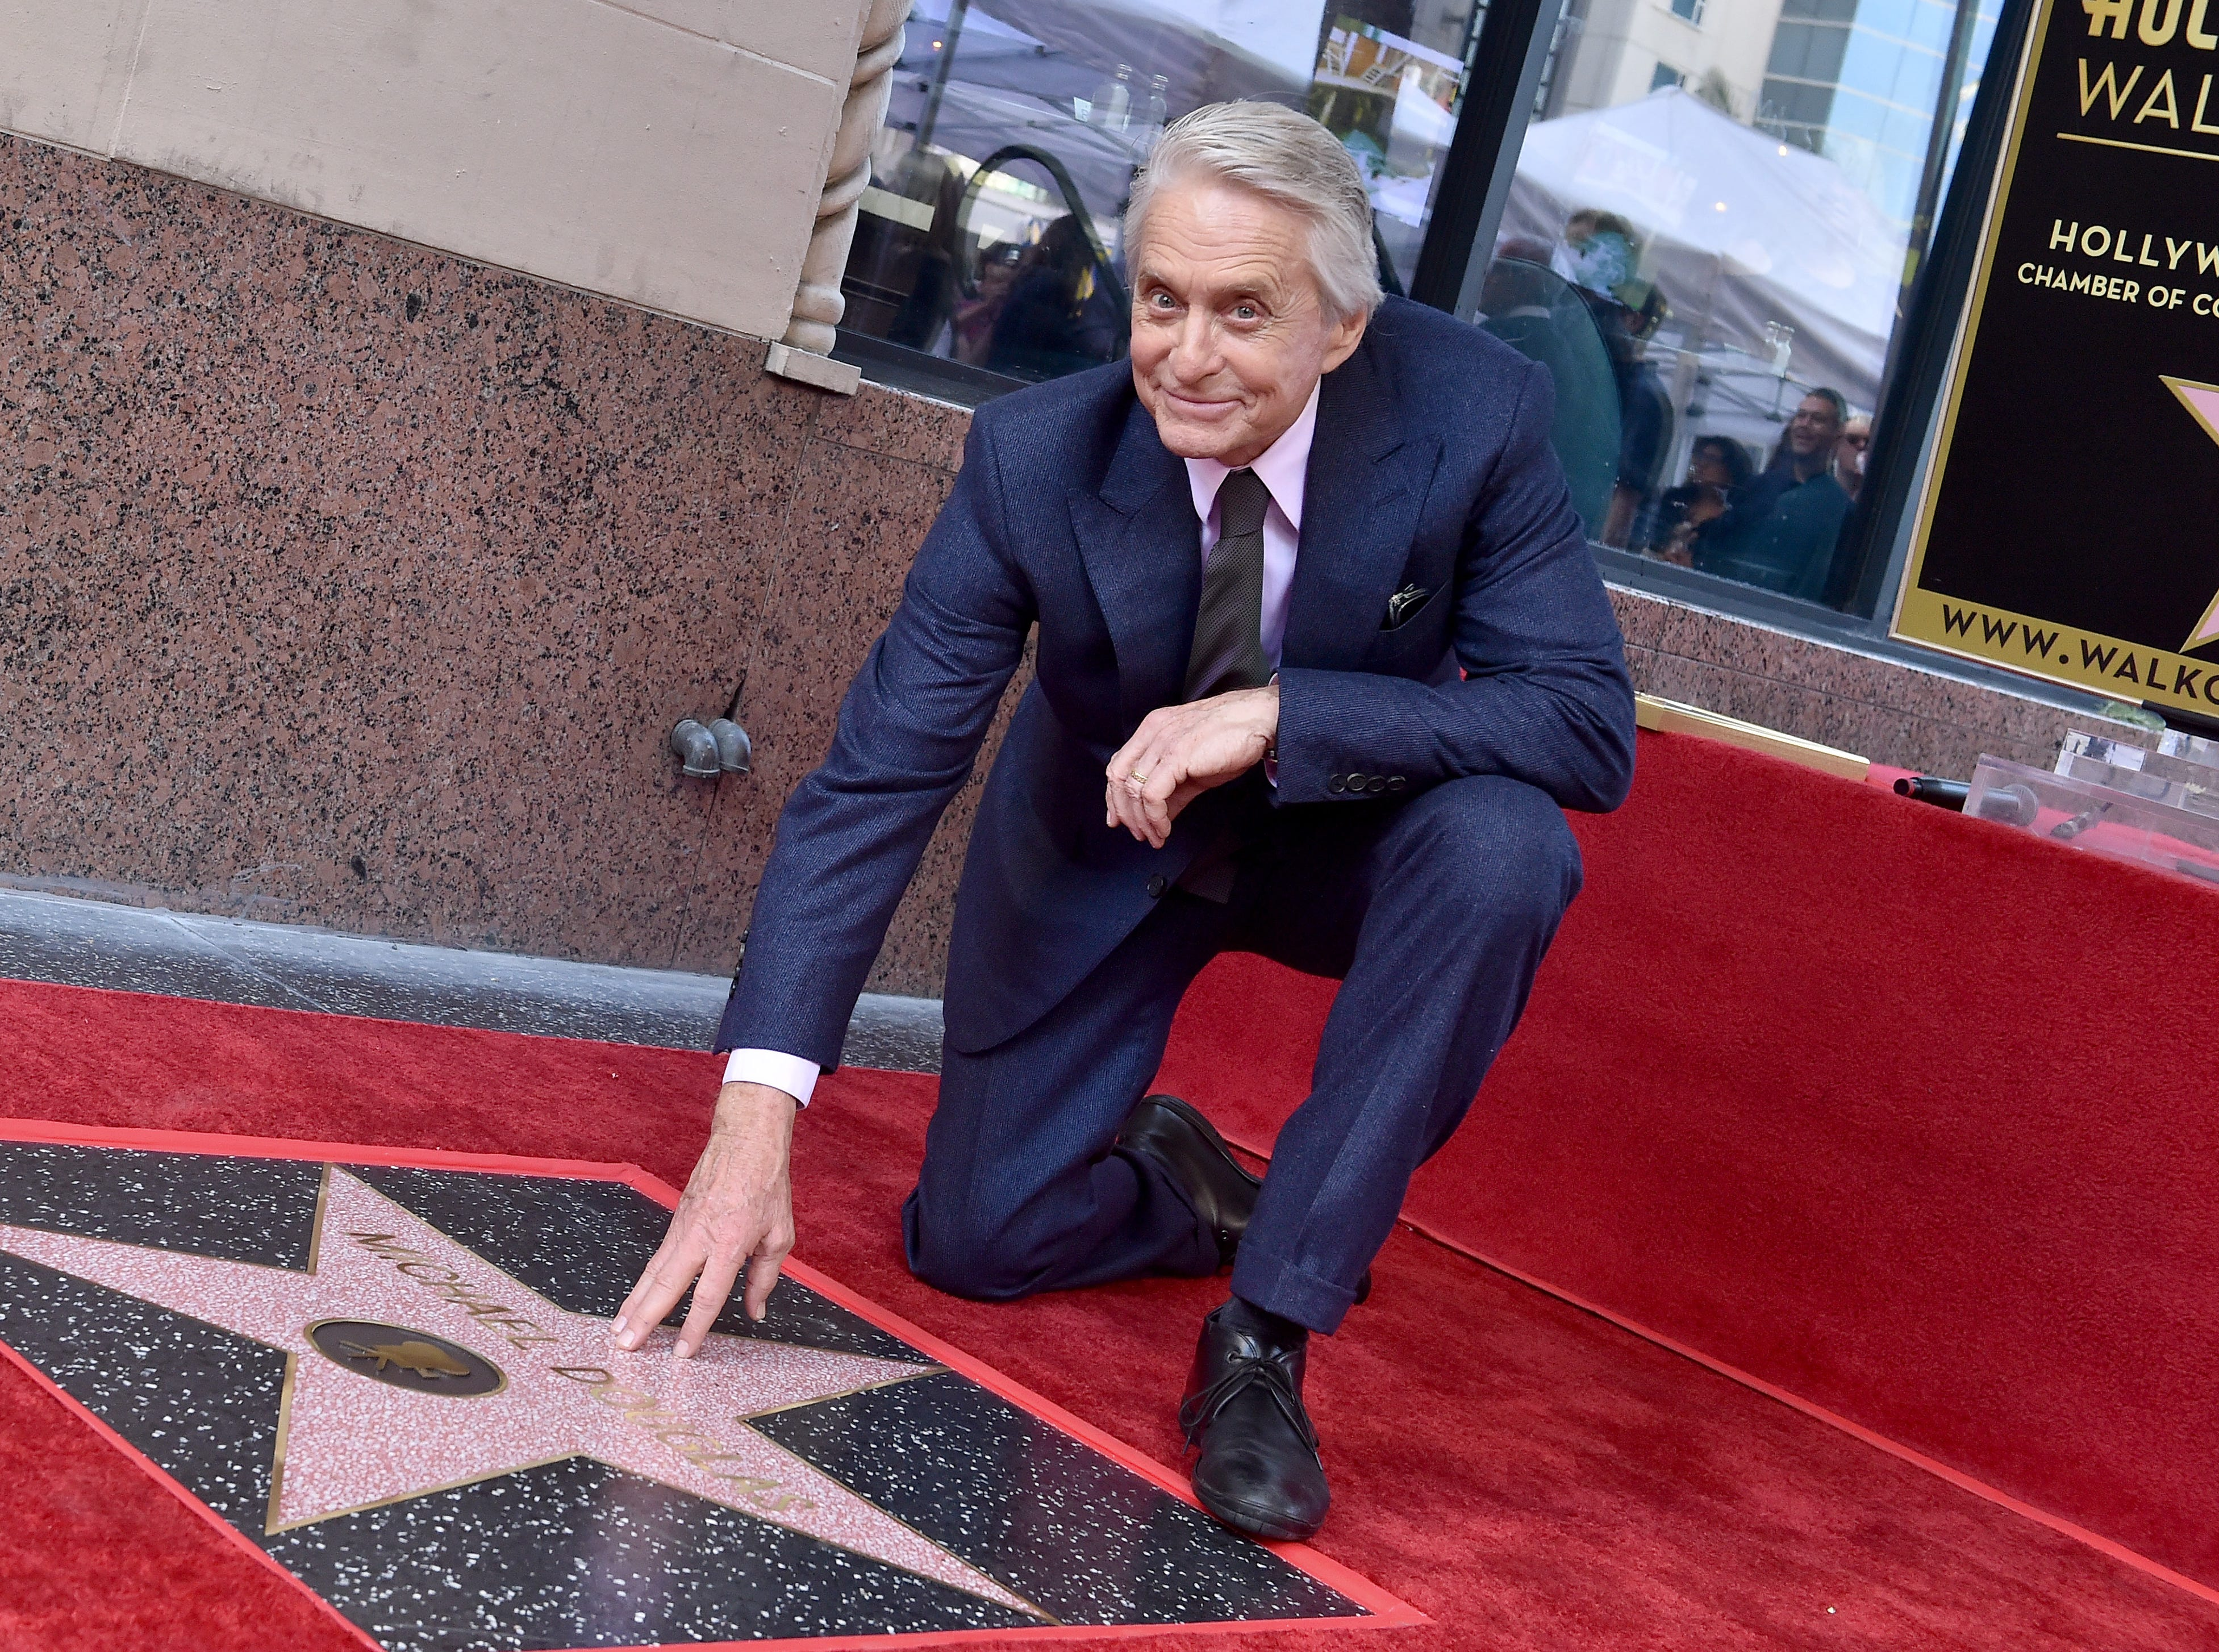 HOLLYWOOD, CA - NOVEMBER 06:  Michael Douglas is honored with star on the Hollywood Walk of Fame on November 06, 2018 in Hollywood, California.  (Photo by Axelle/Bauer-Griffin/FilmMagic) ORG XMIT: 775248764 ORIG FILE ID: 1058405090